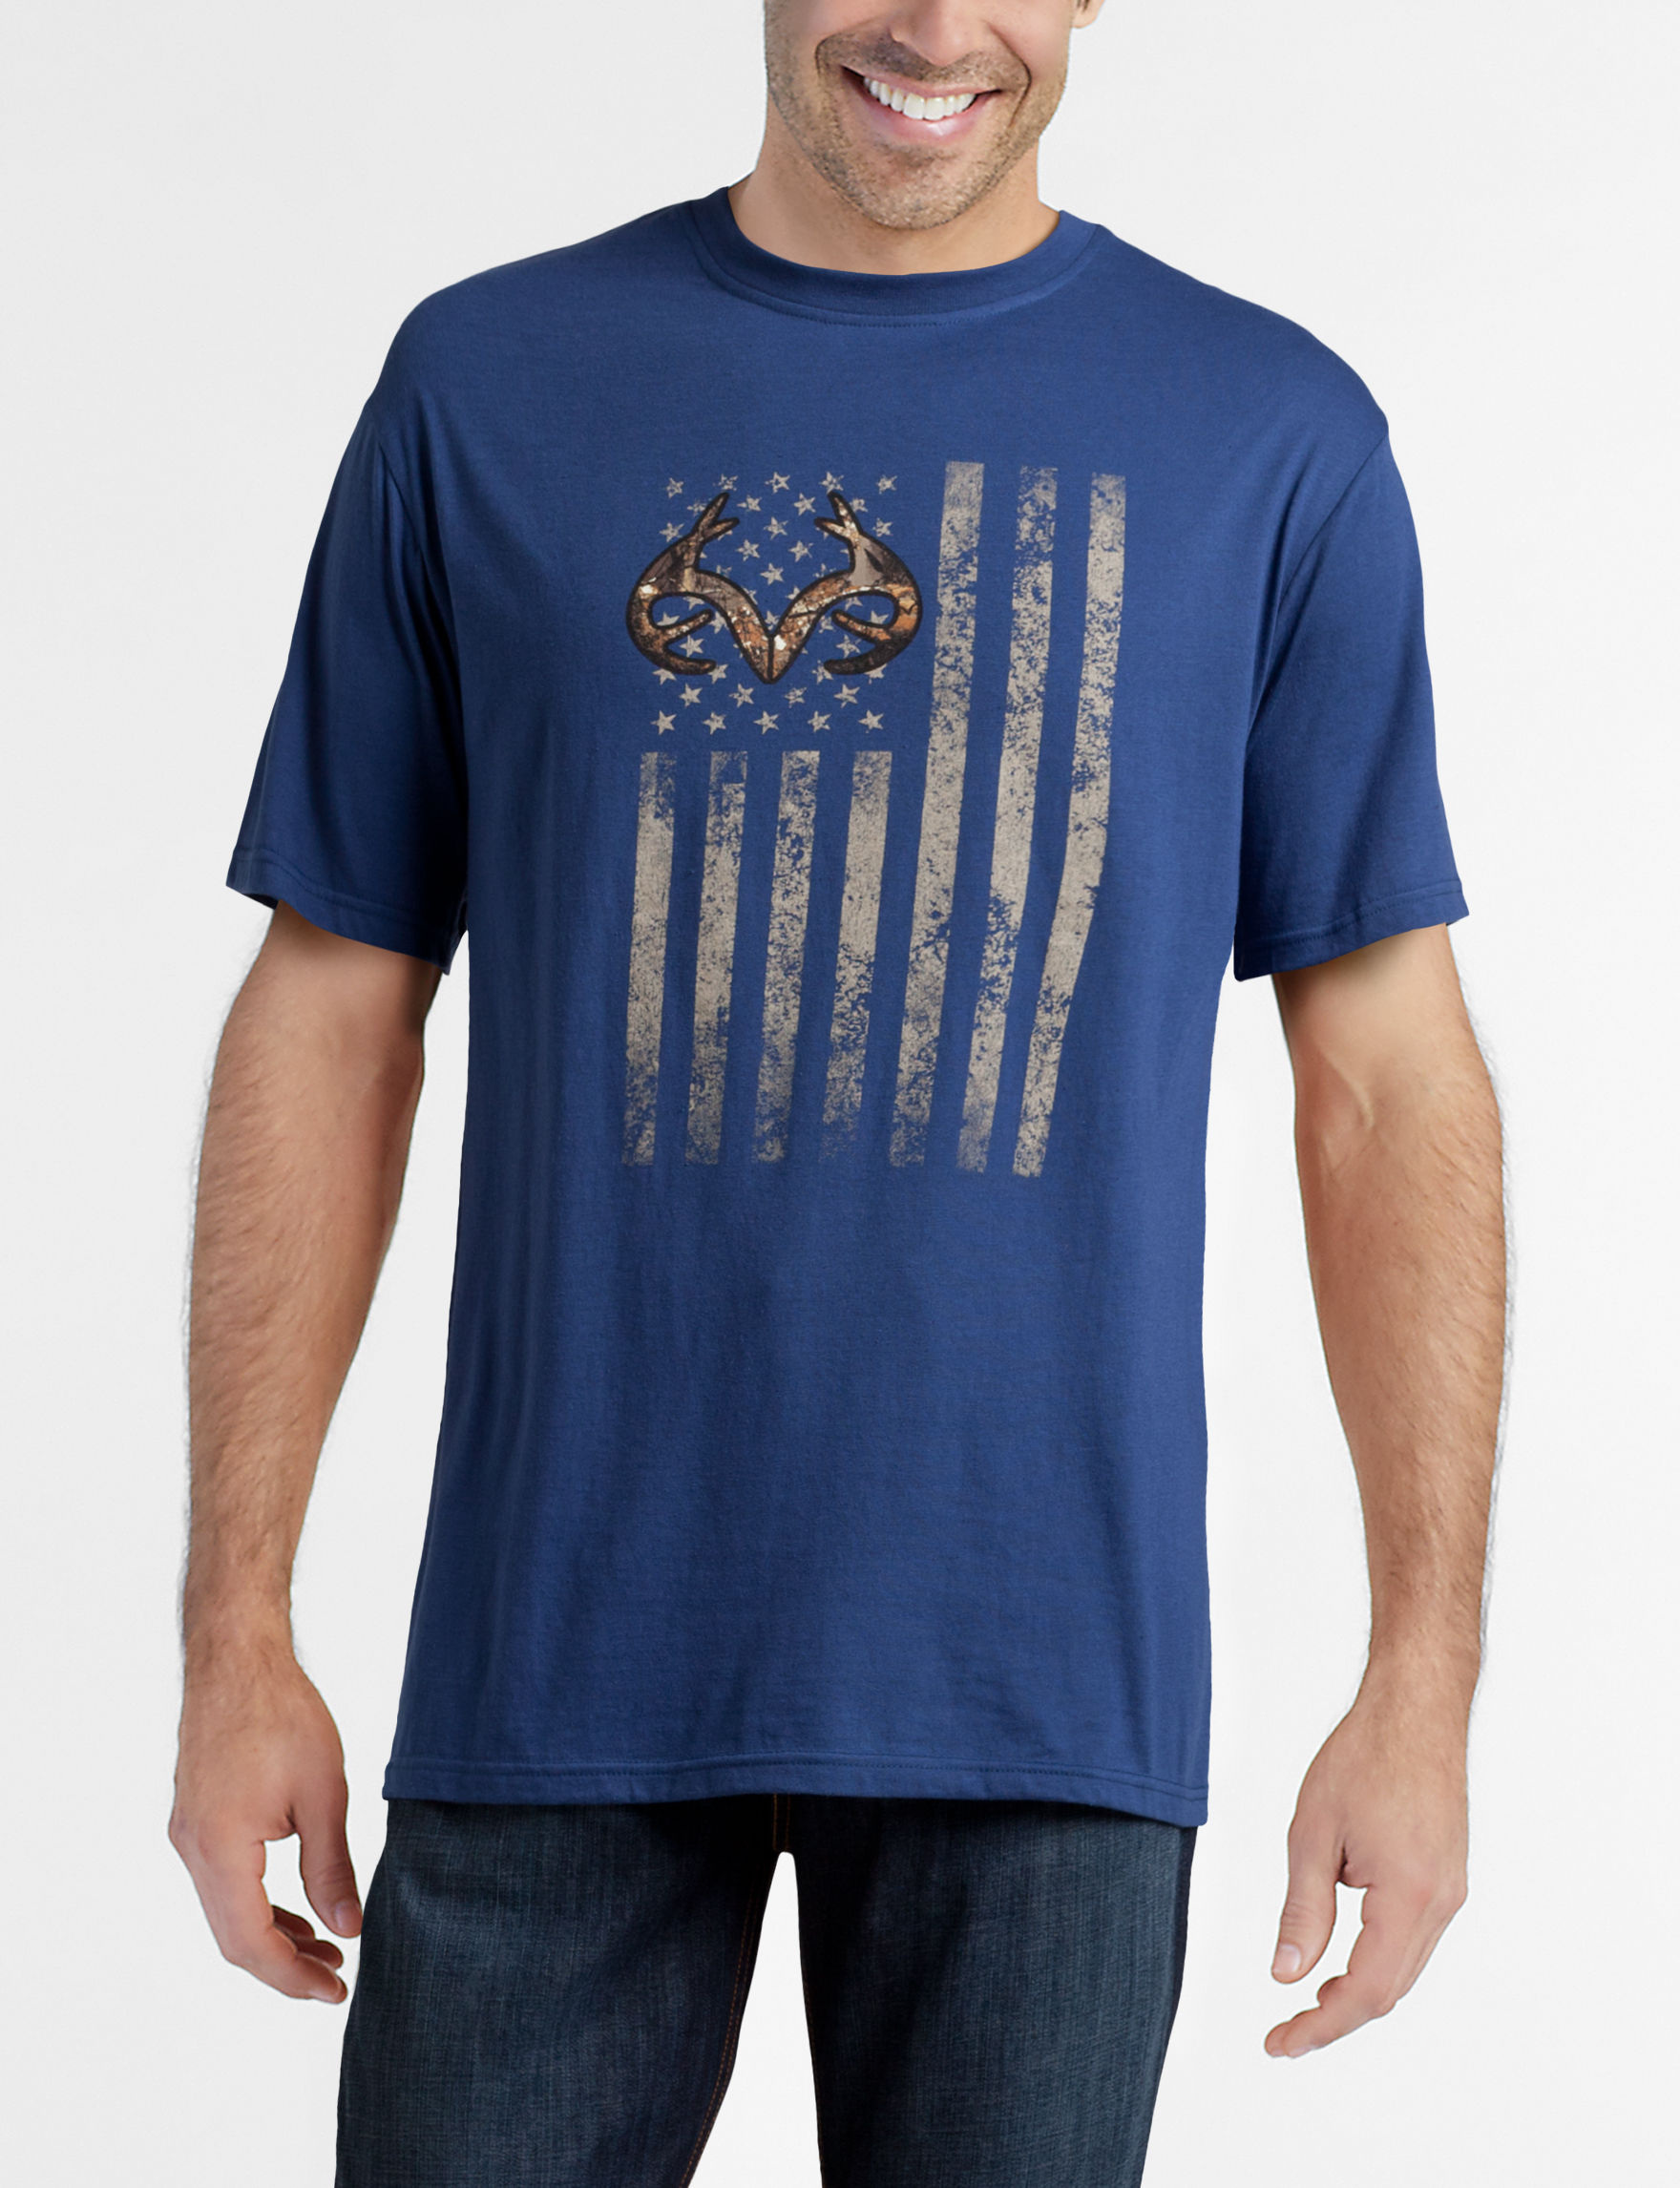 Realtree Indigo Tees & Tanks